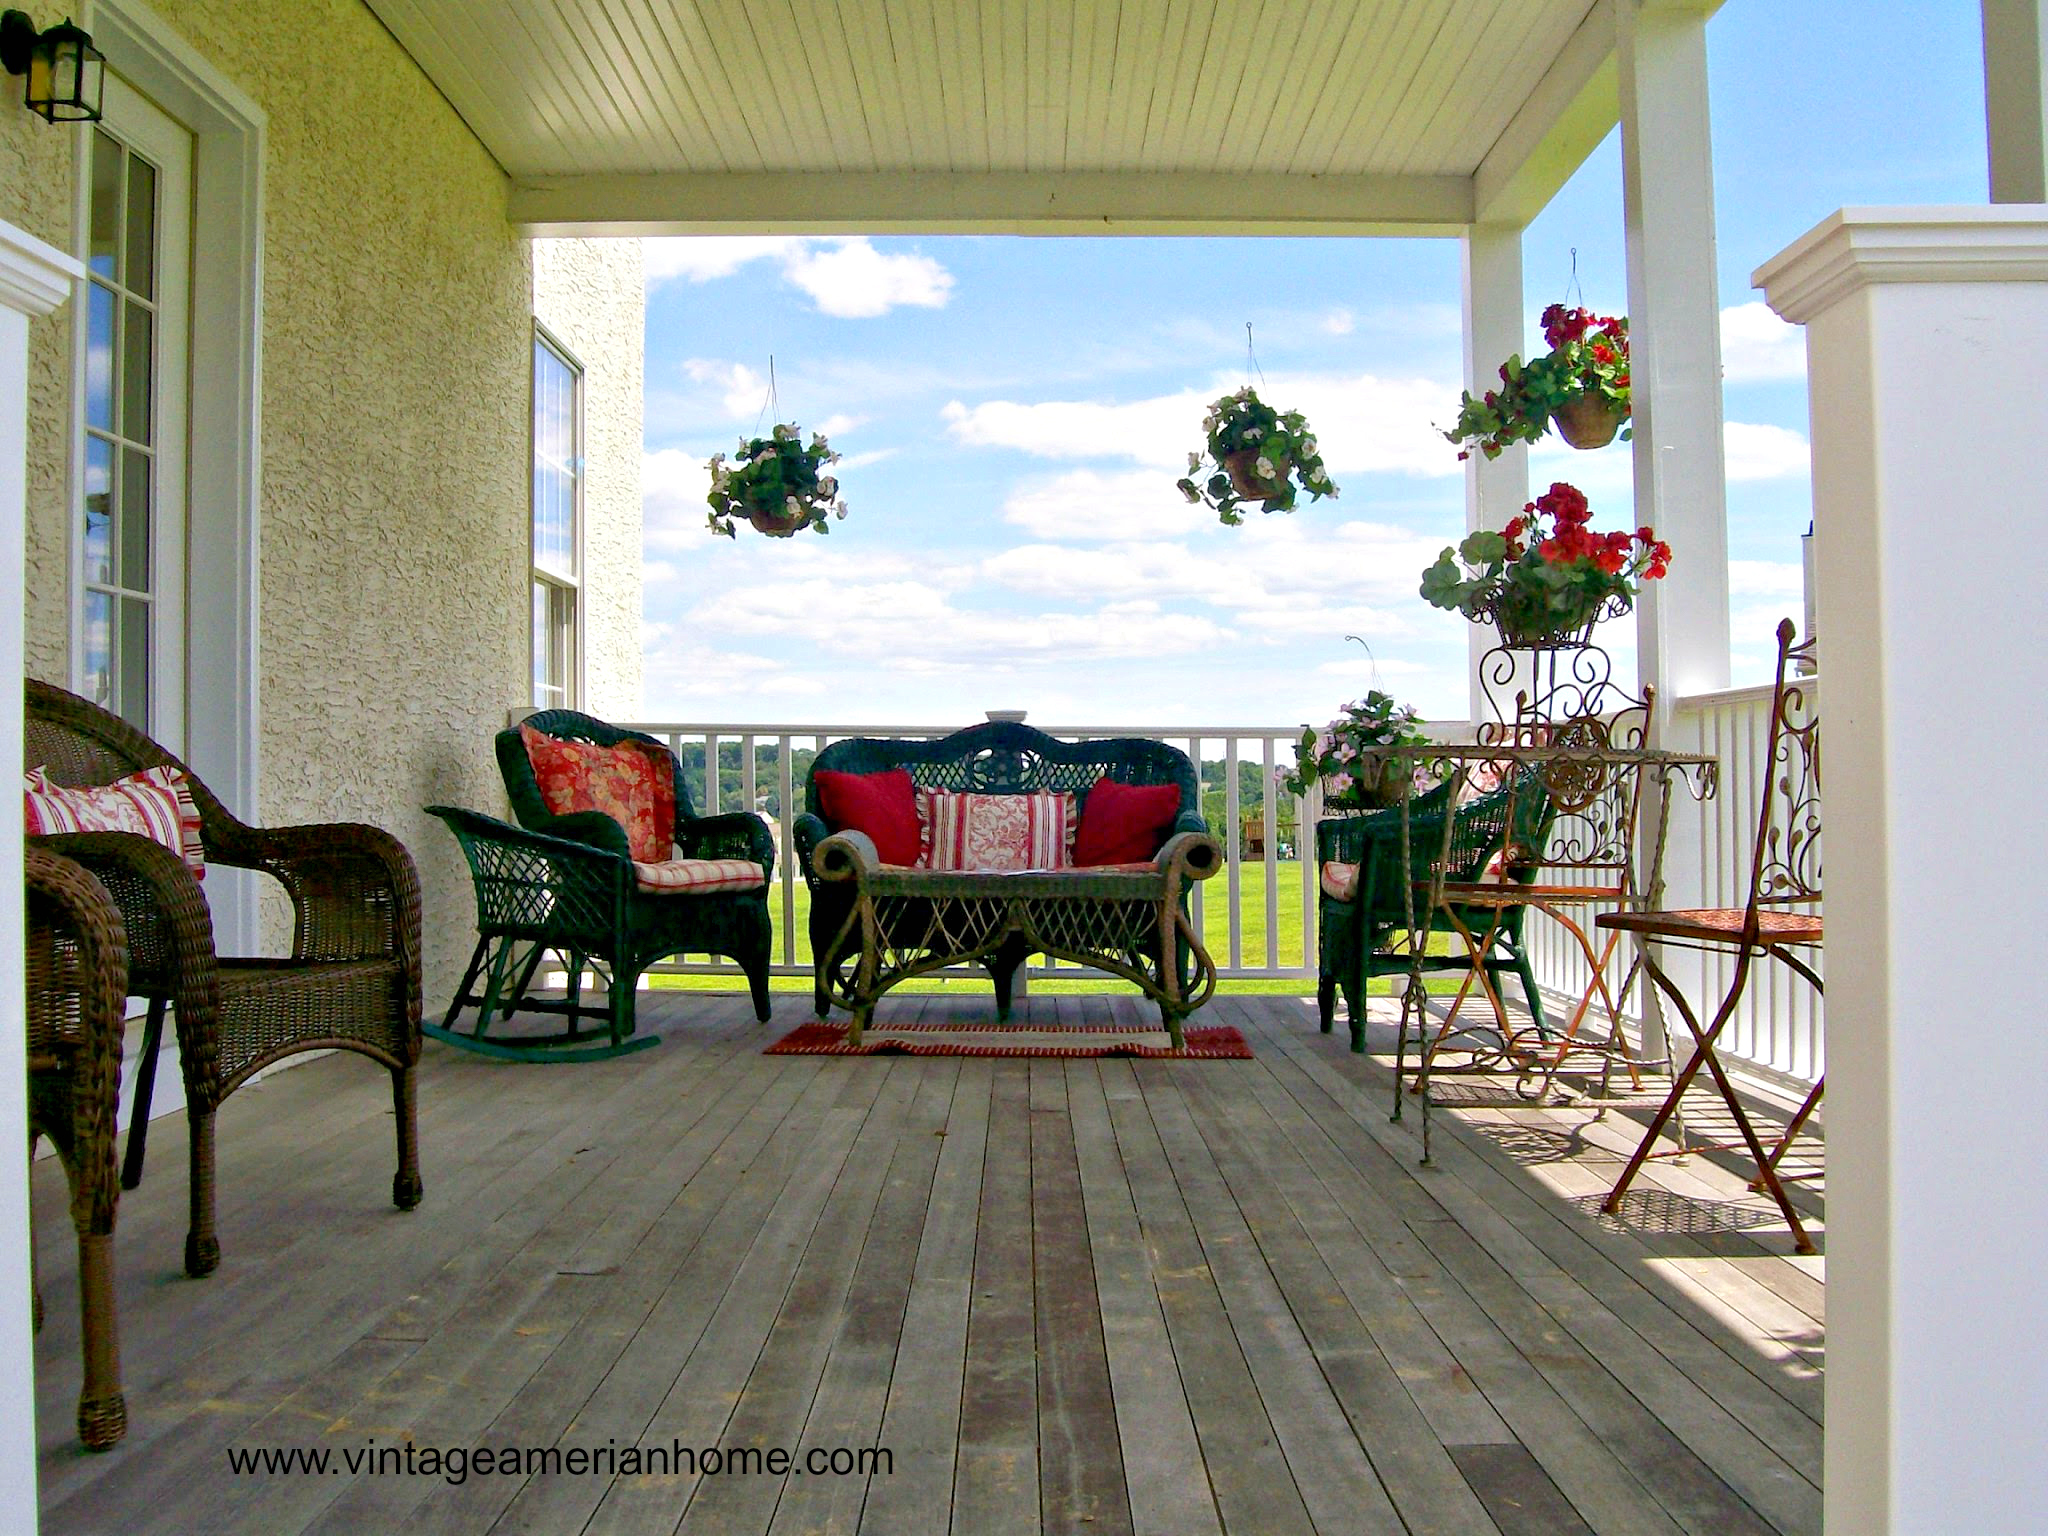 10 Front Porch Decorating Ideas - Vintage American Home on Large Back Porch Ideas id=22003